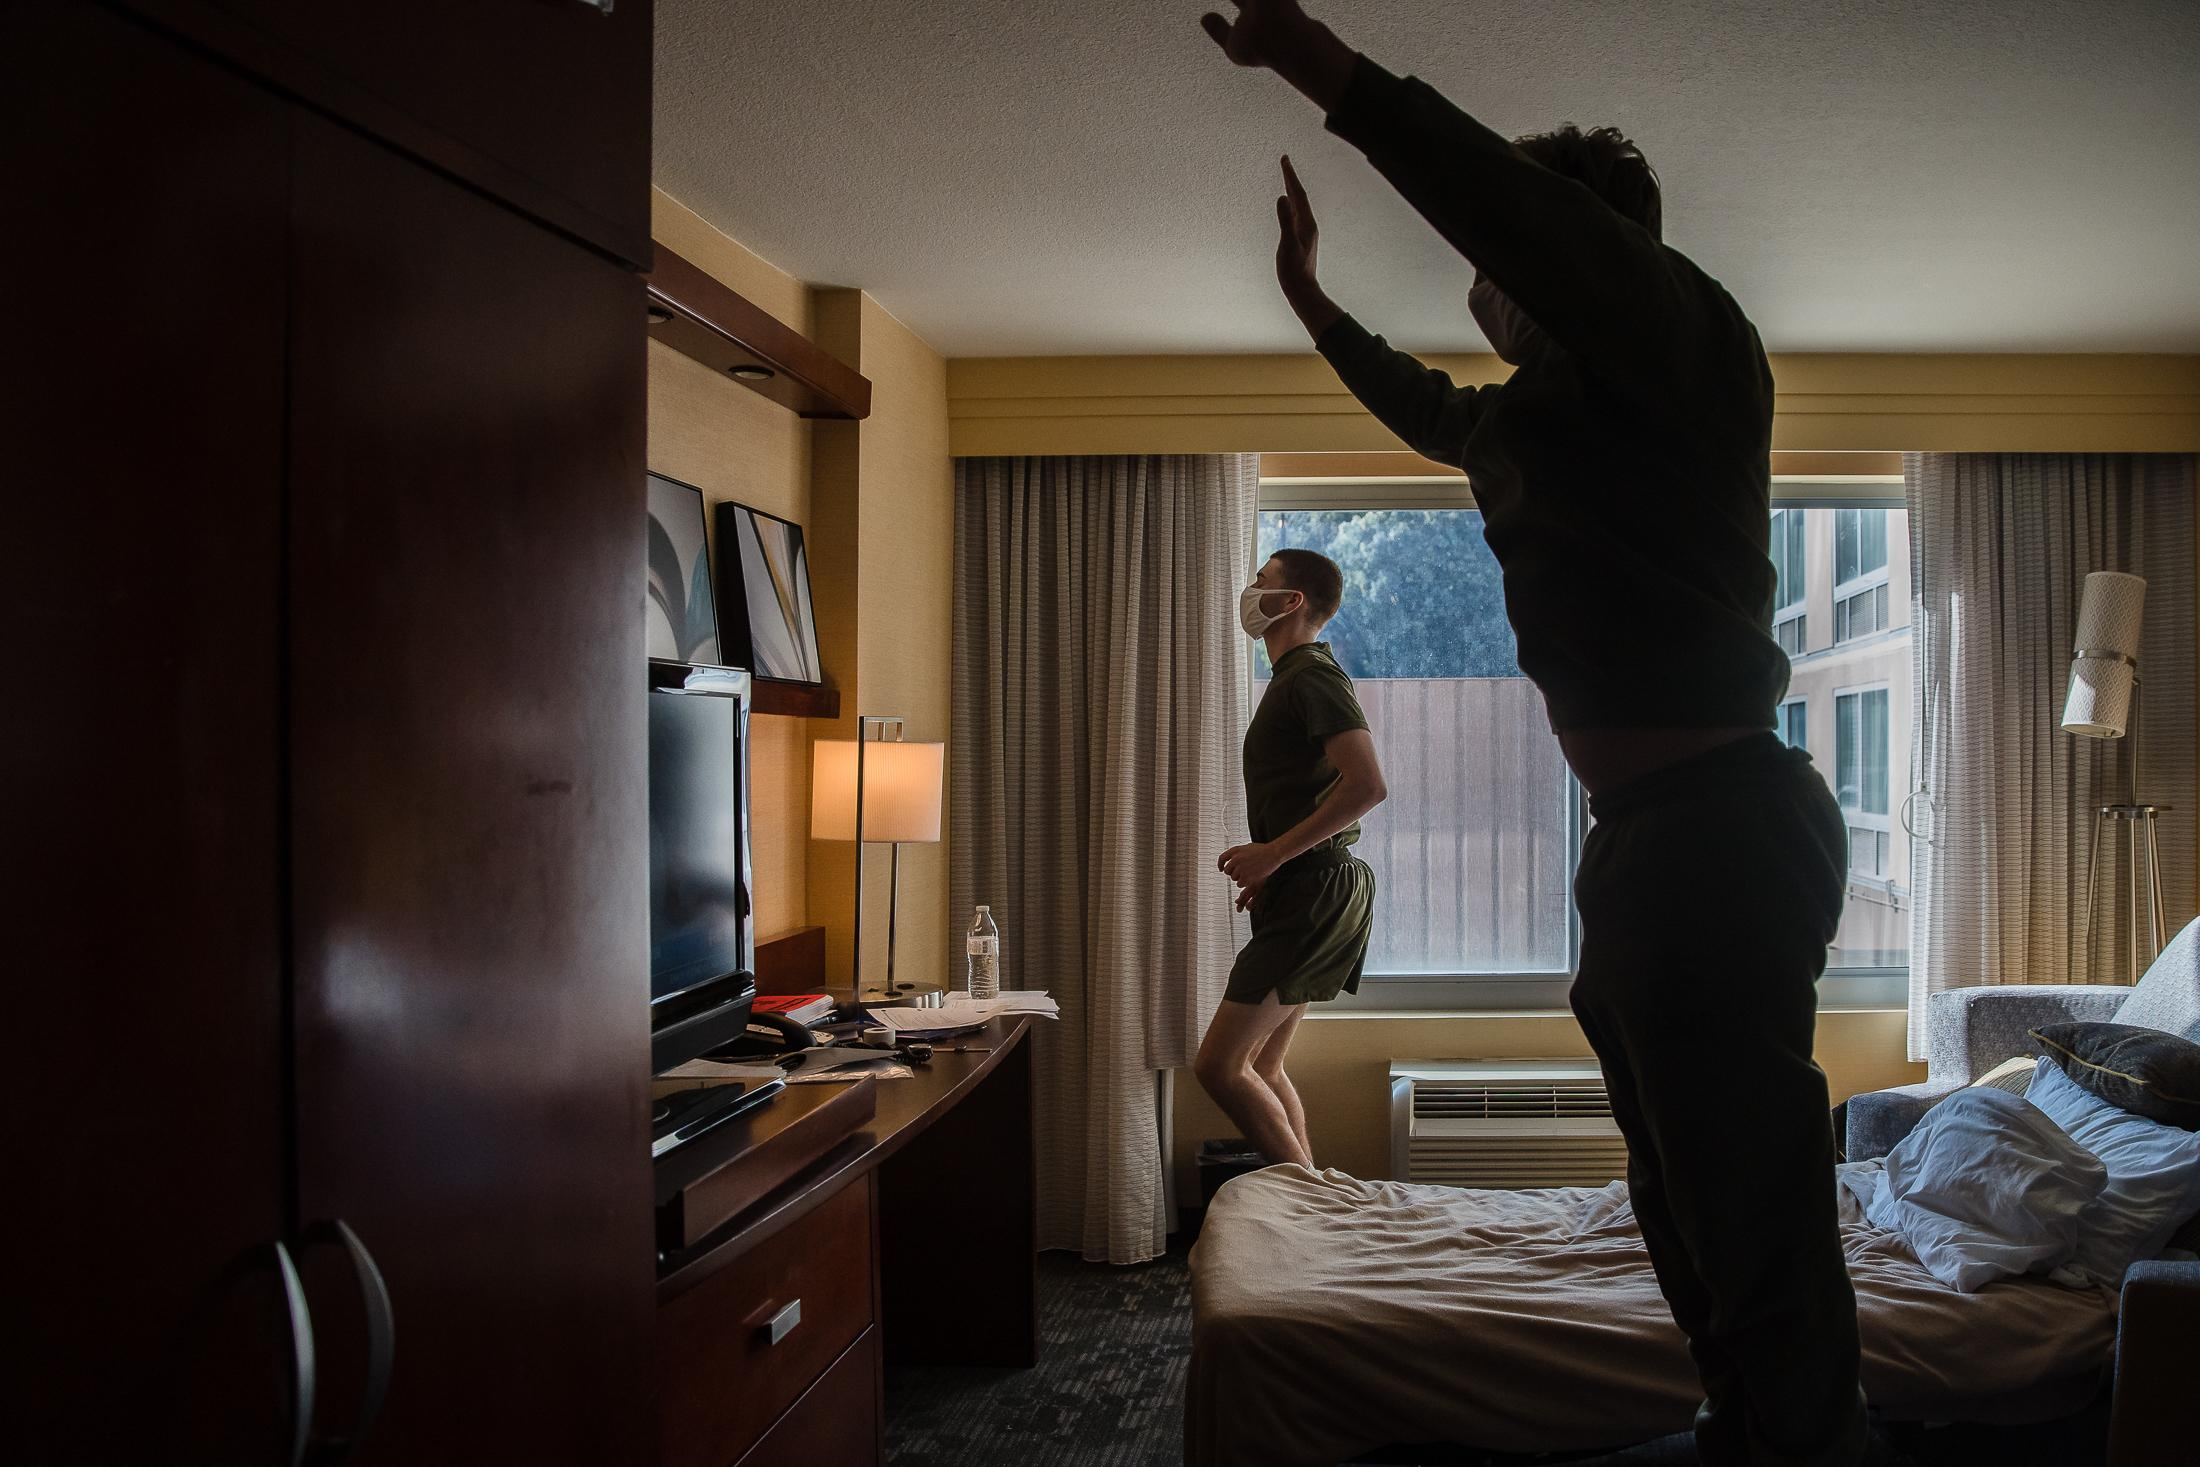 Jacob Jones (right) and Coulter Whitlow (left) have been sharing a room, they are part of Company Fox and have been in quarantine for a week at the Courtyard Marriott in San Diego on October 13, 2020. They work out daily to stay active and try to challenge one another with how long they can do certain exercises.